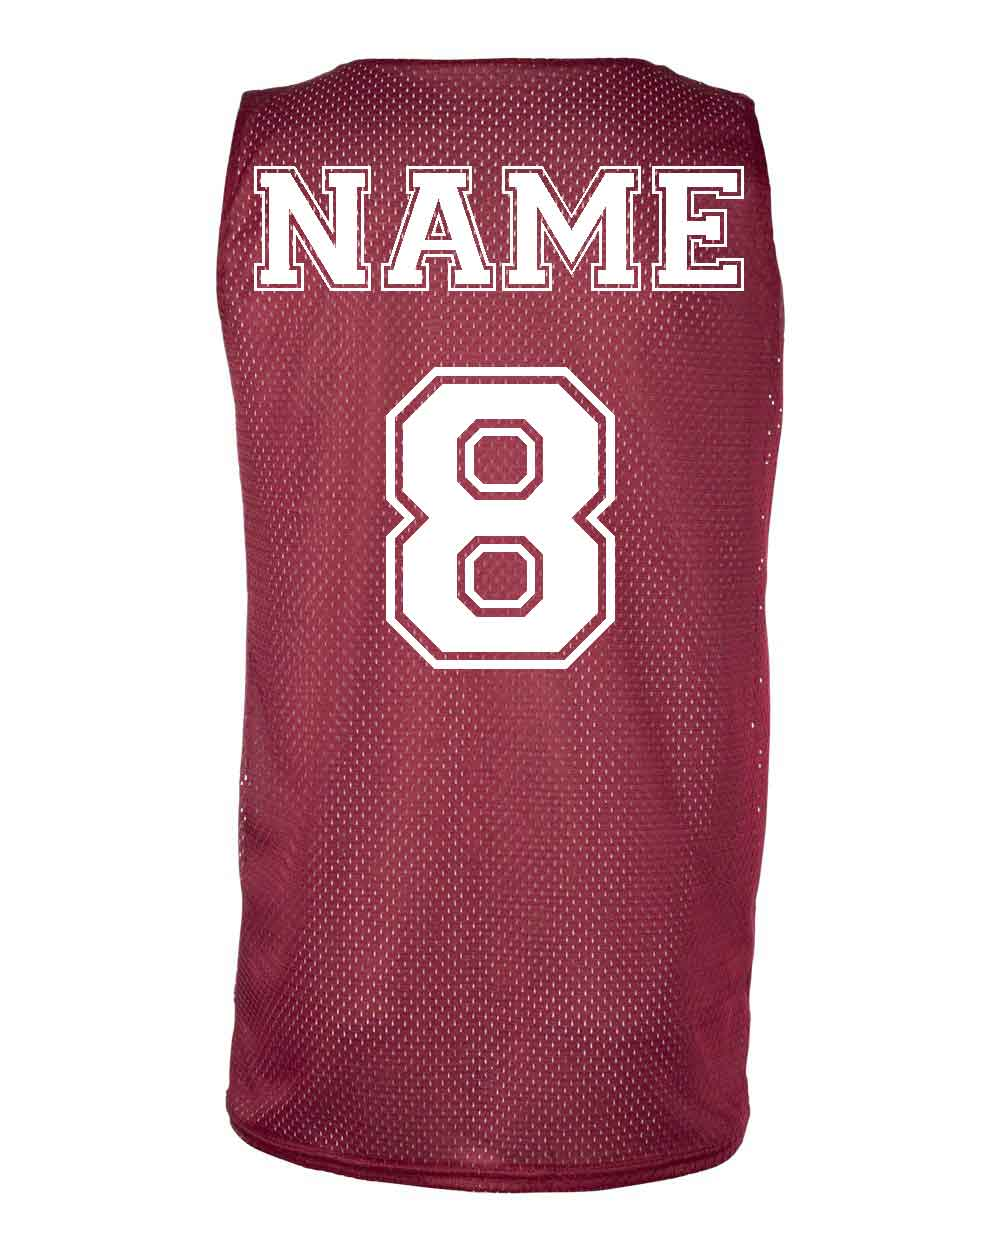 Sports Jersey Customization Names and Numbers